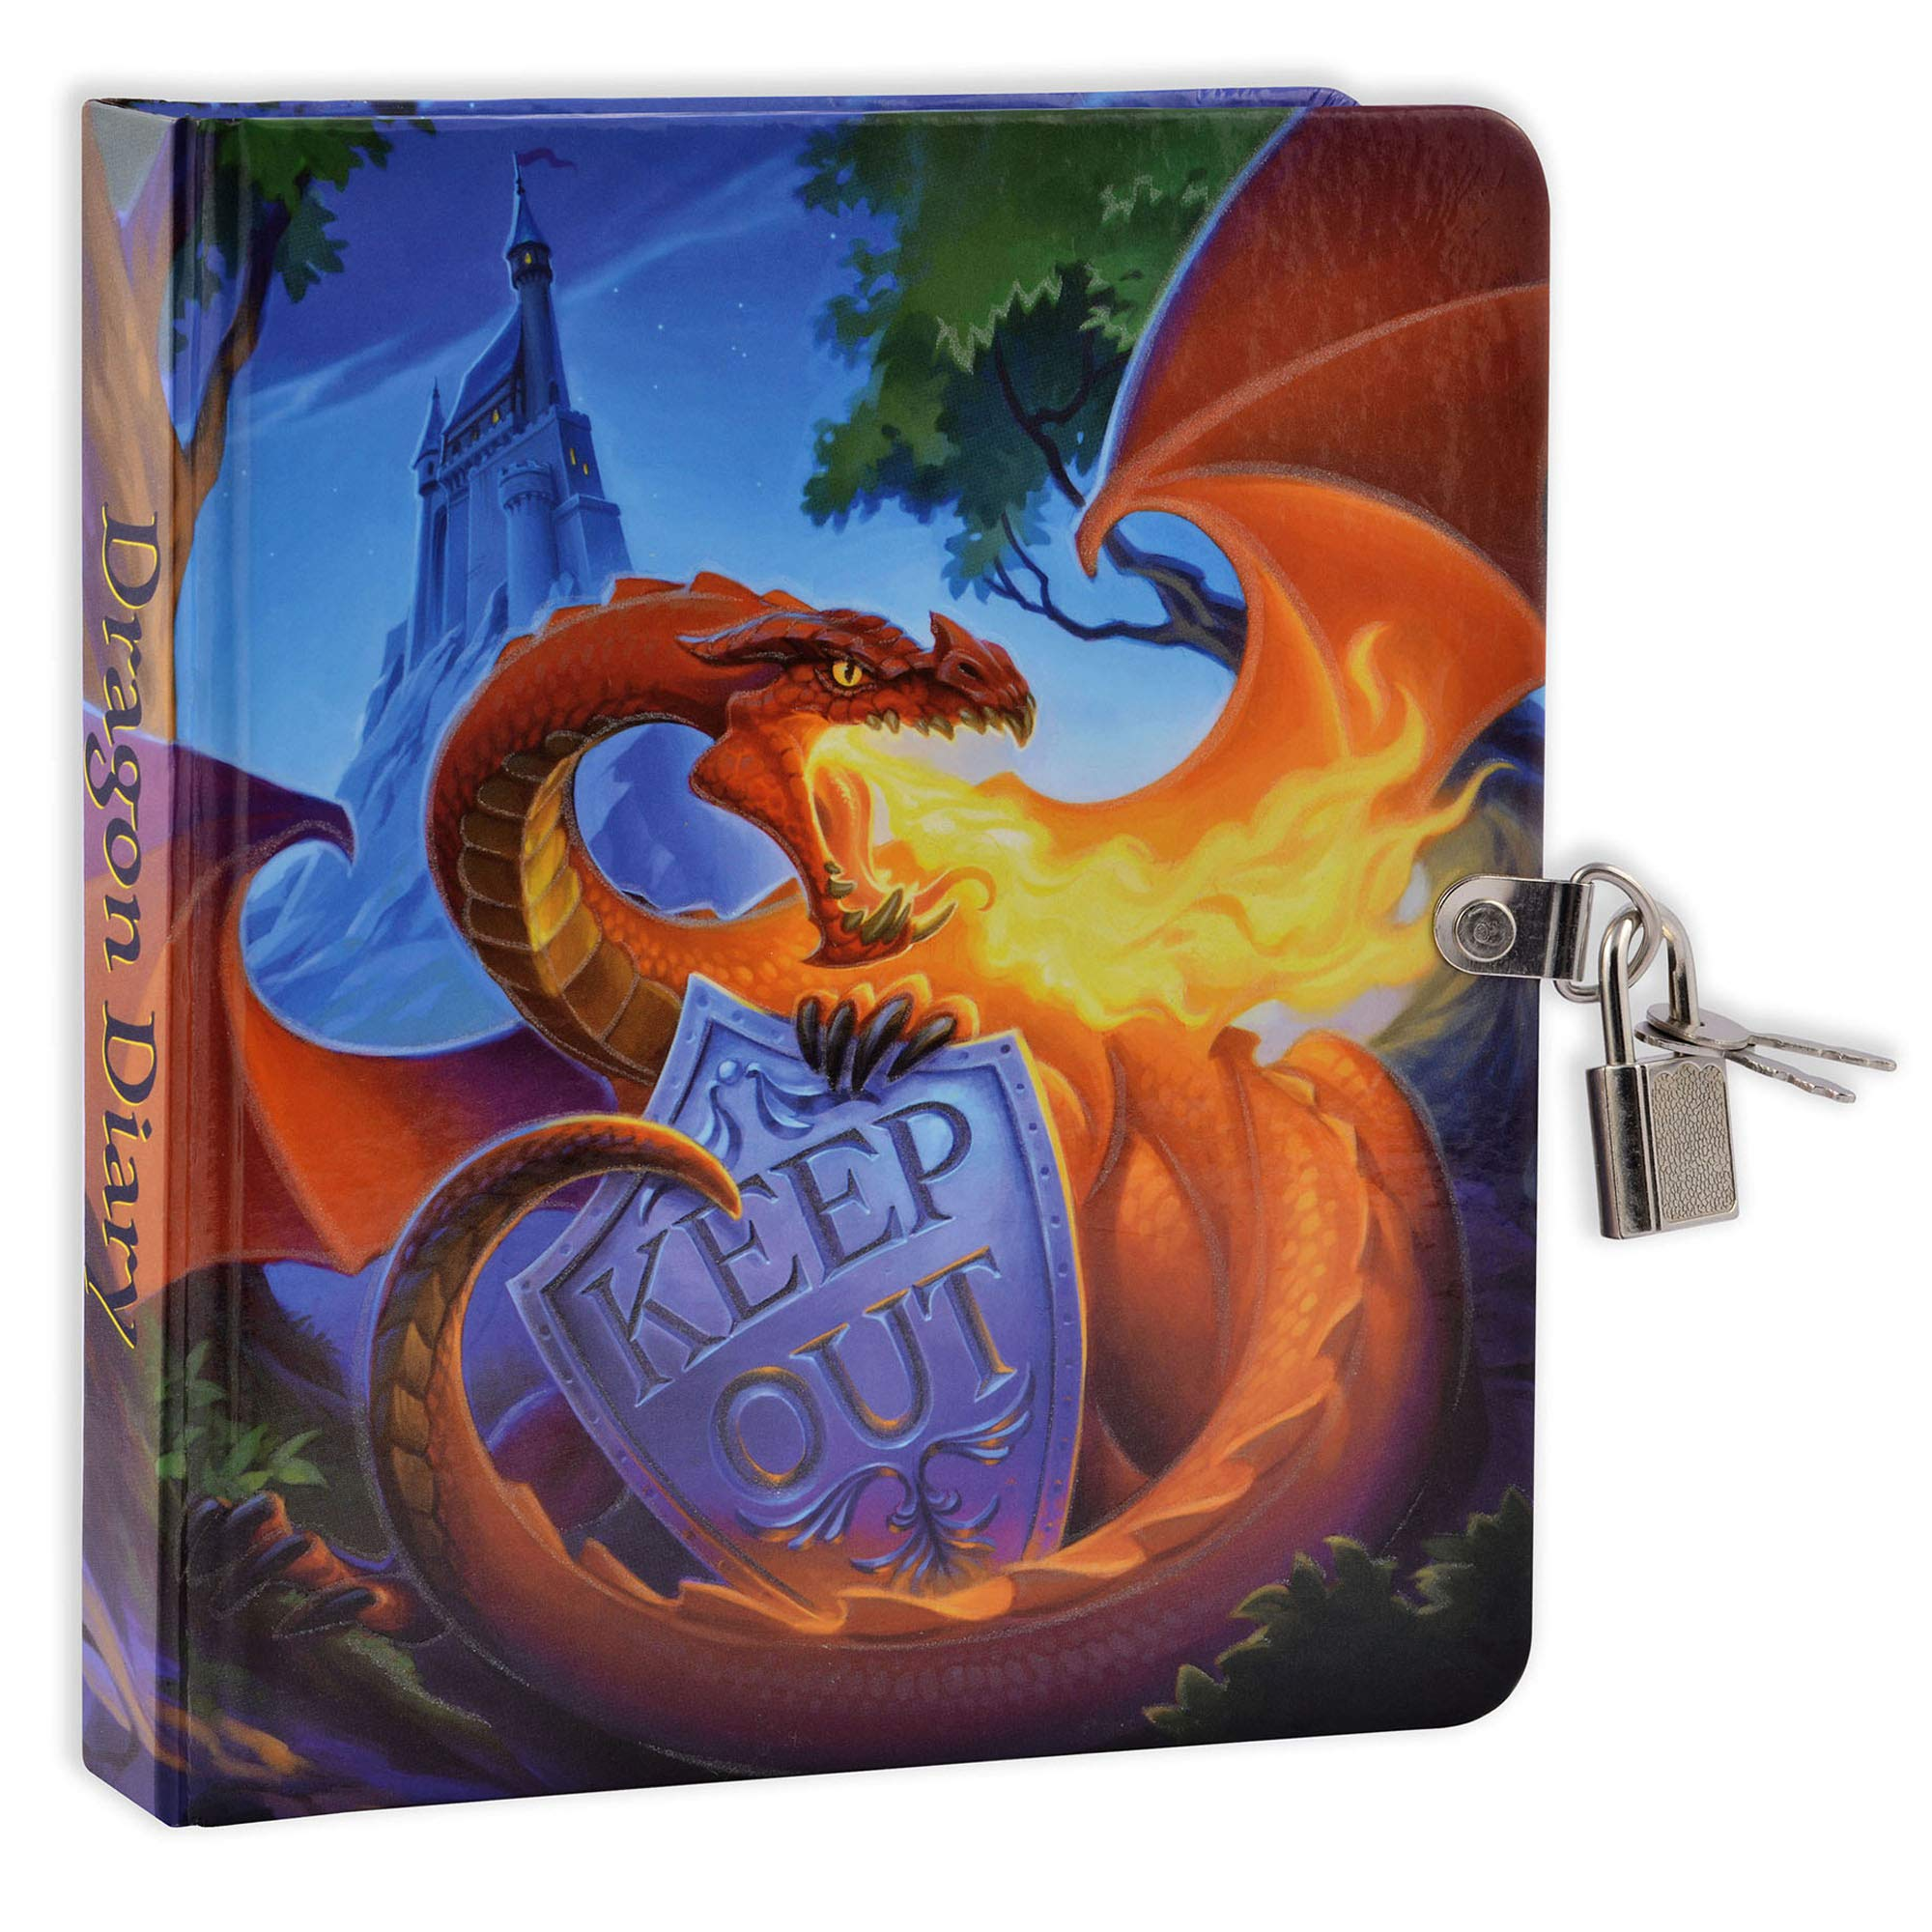 Mollybee Kids Keep Out Dragon Glow in The Dark Lock and Key Diary by Mollybee Kids